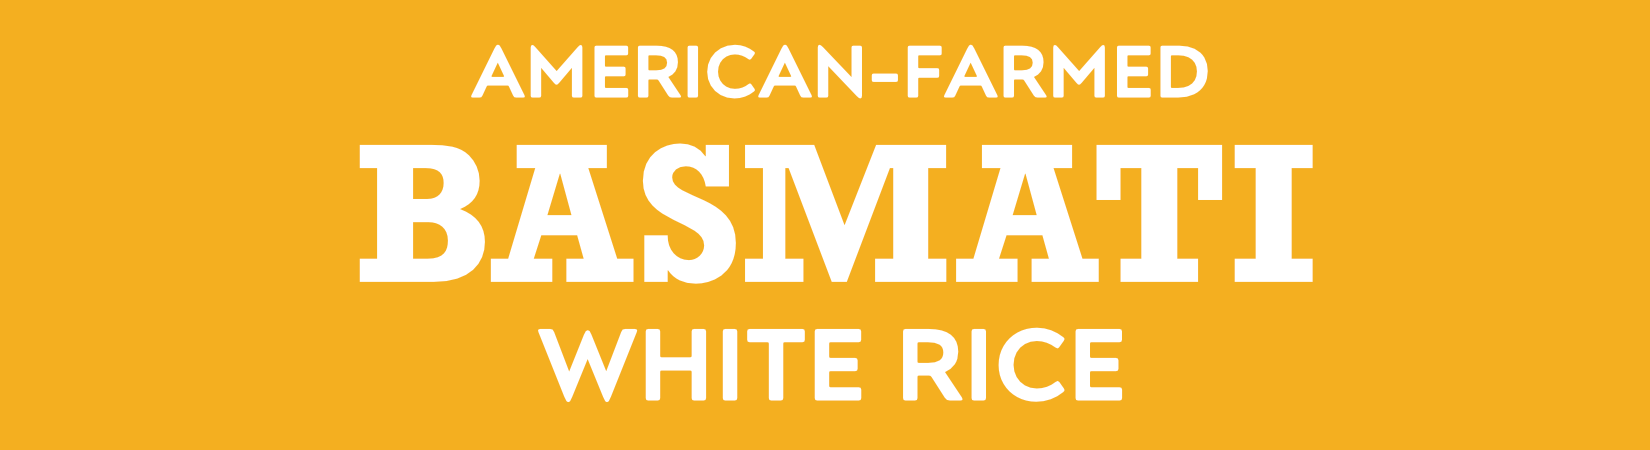 Rice Varieties/Basmati White Rice/BAS-WHITE-PNG.png